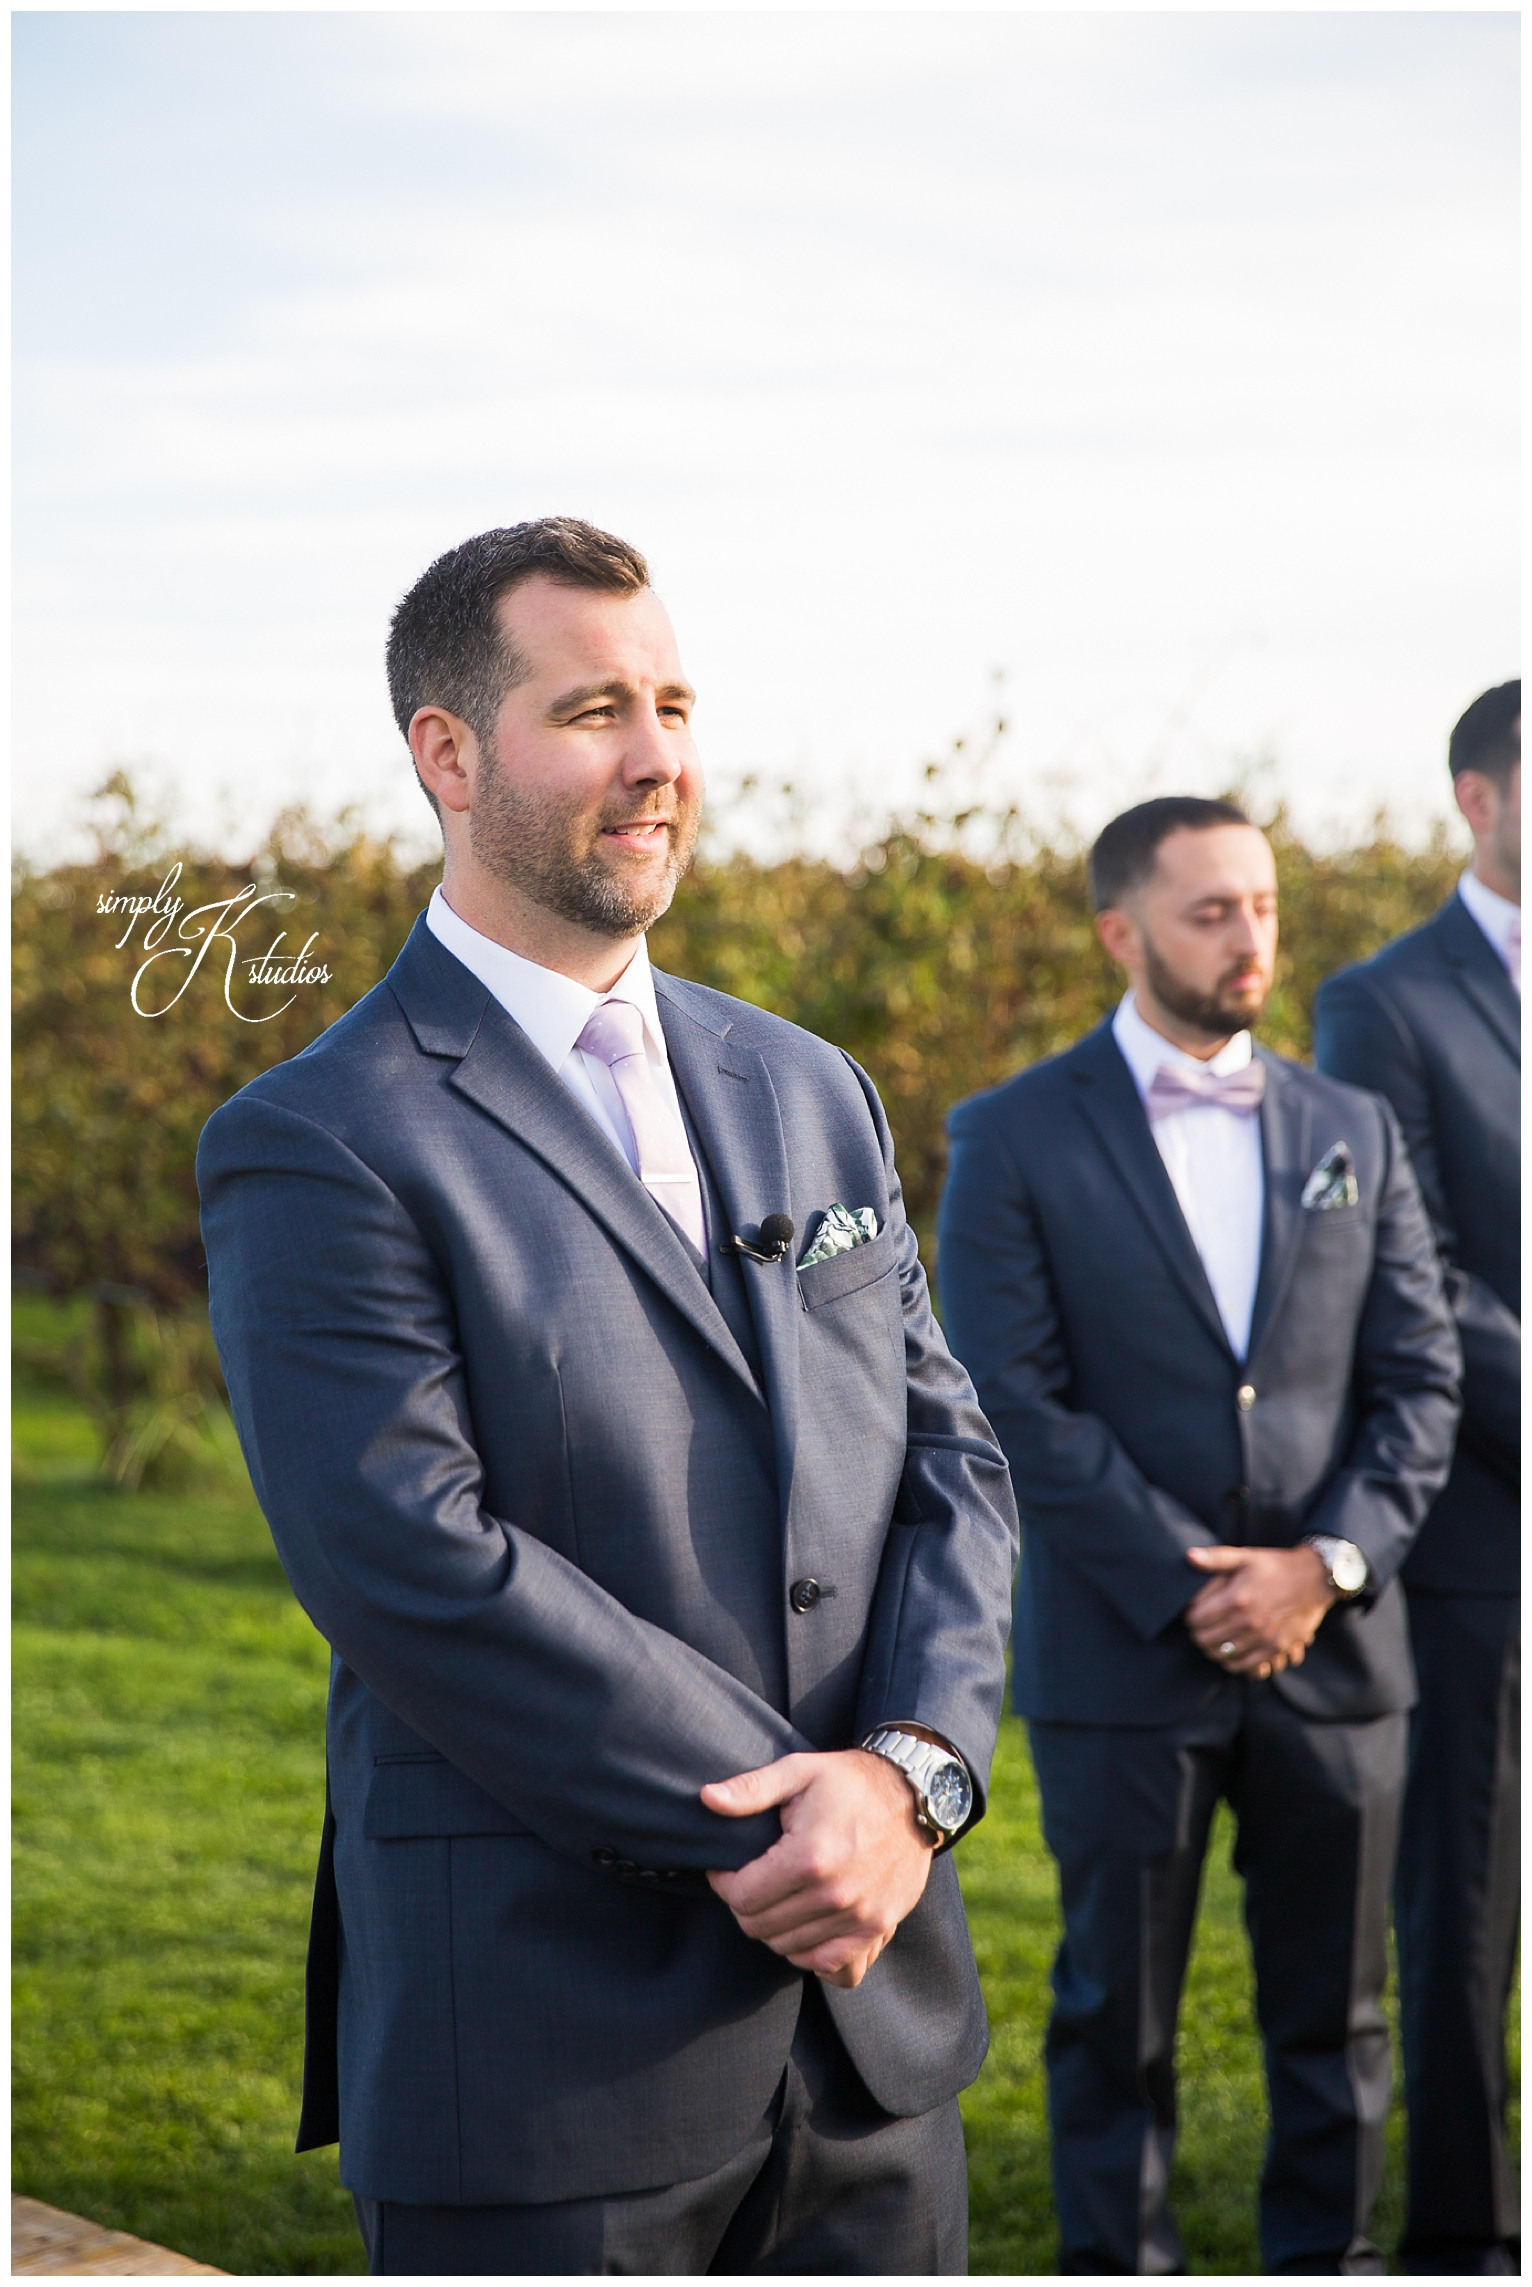 75 Groom at Ceremony.jpg